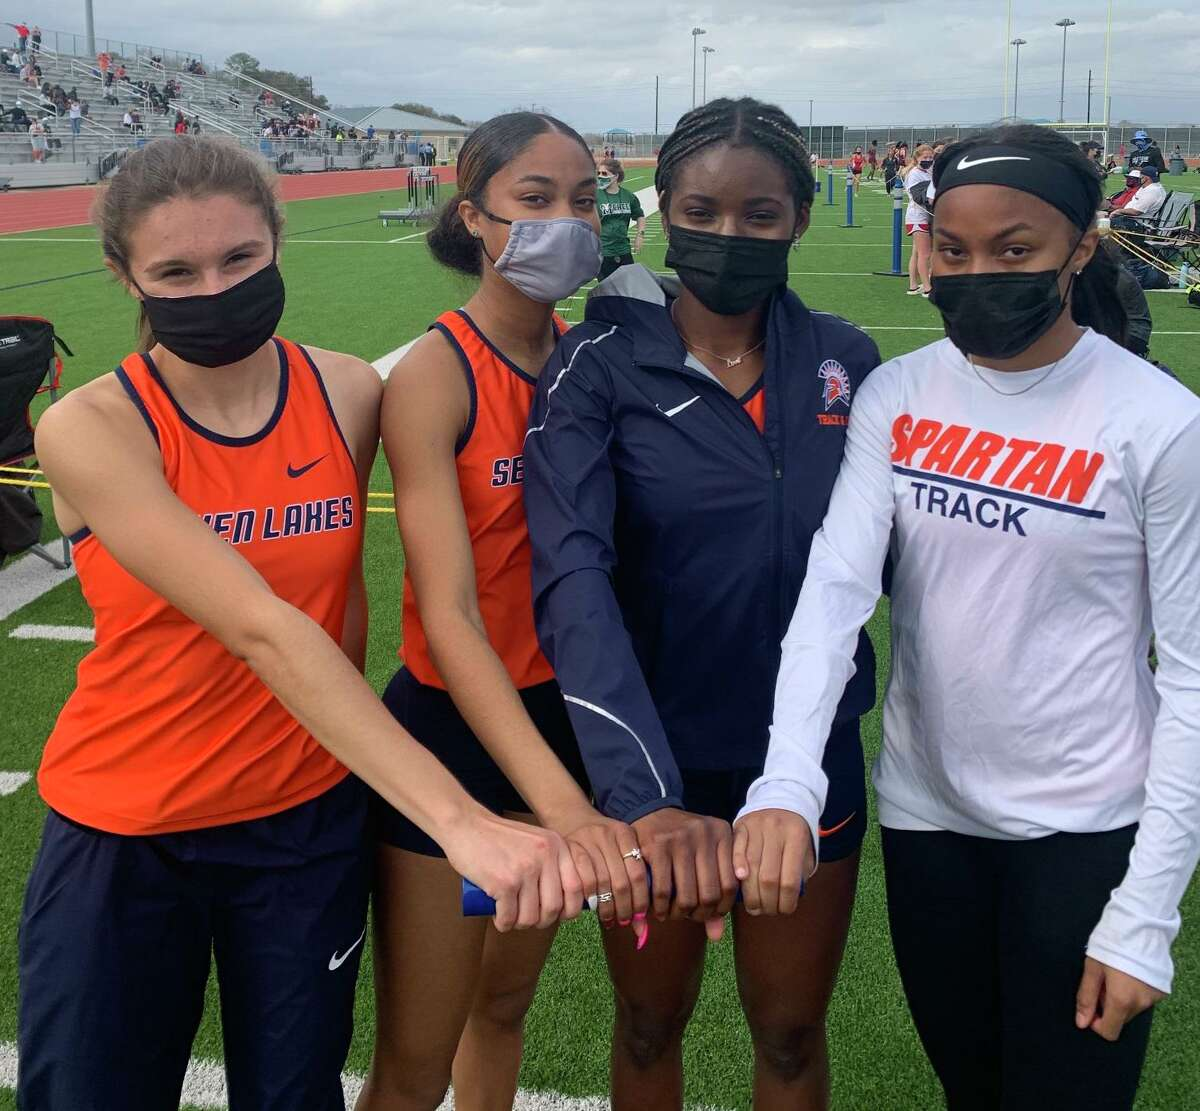 Seven Lakes won the girls team championship at the Bubba Fife Relays, scoring 197 points including a win in the 1,600-meter relay run by Avary Catchings, Ibiso David-West, Alyssa Tate and Haley Tate.